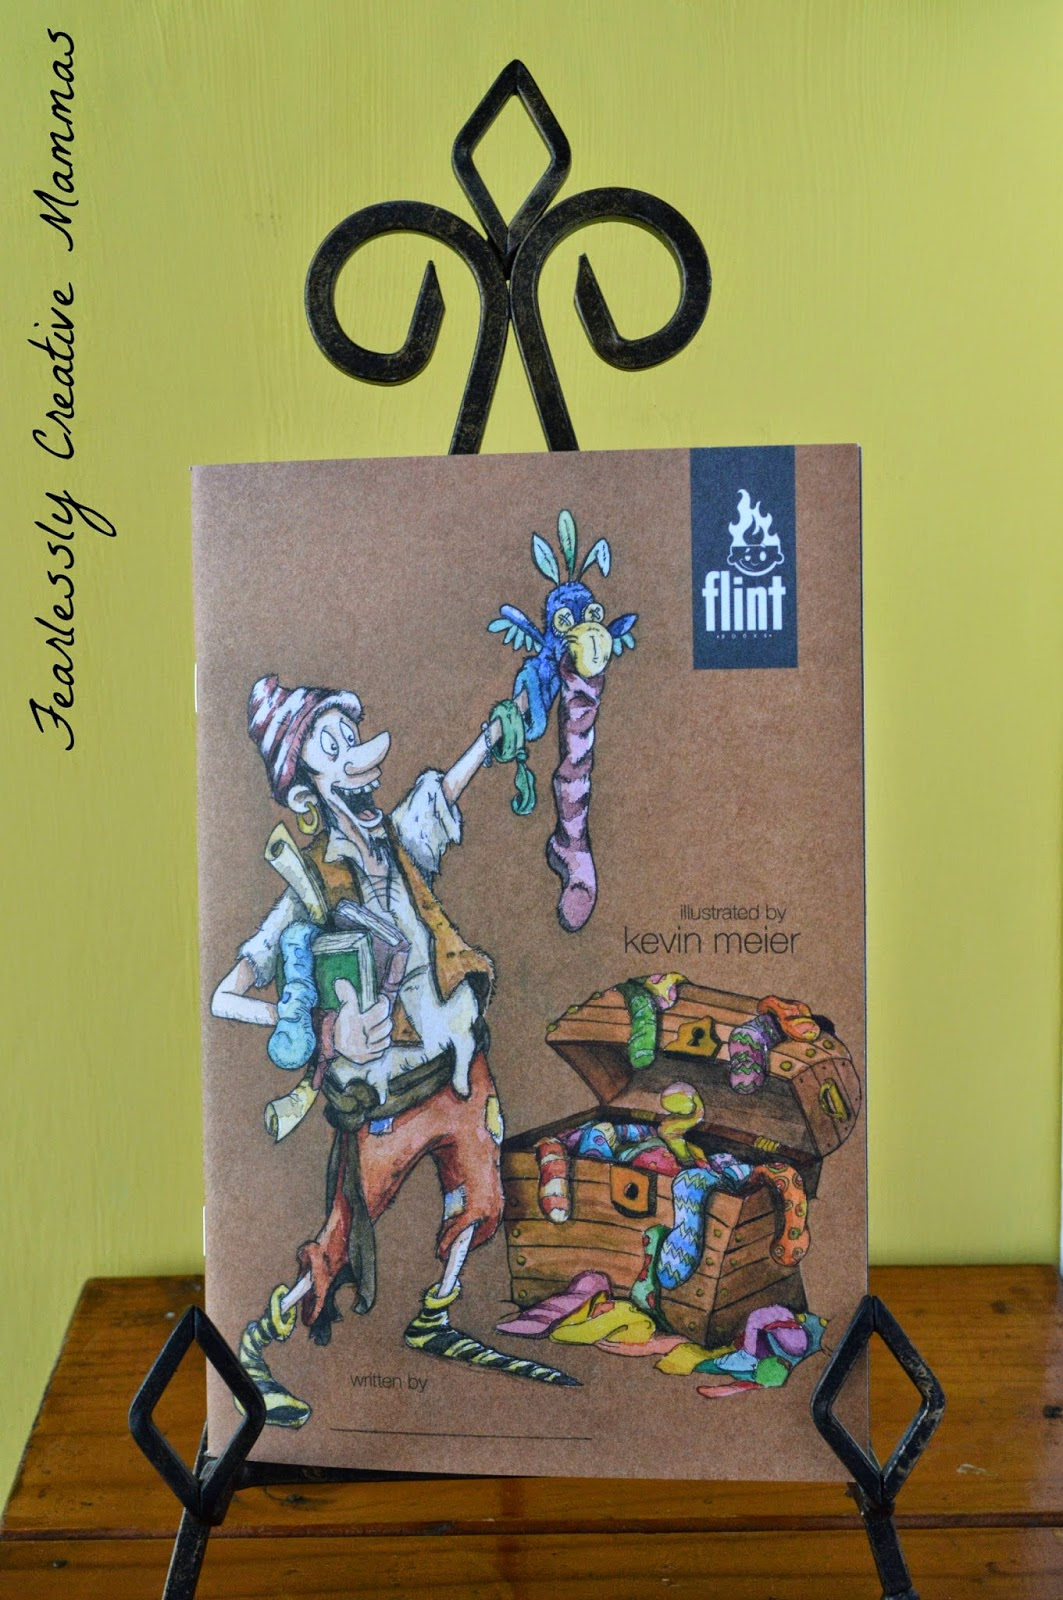 Inspire Creativity with a Flint Book #ImaginewithFlint